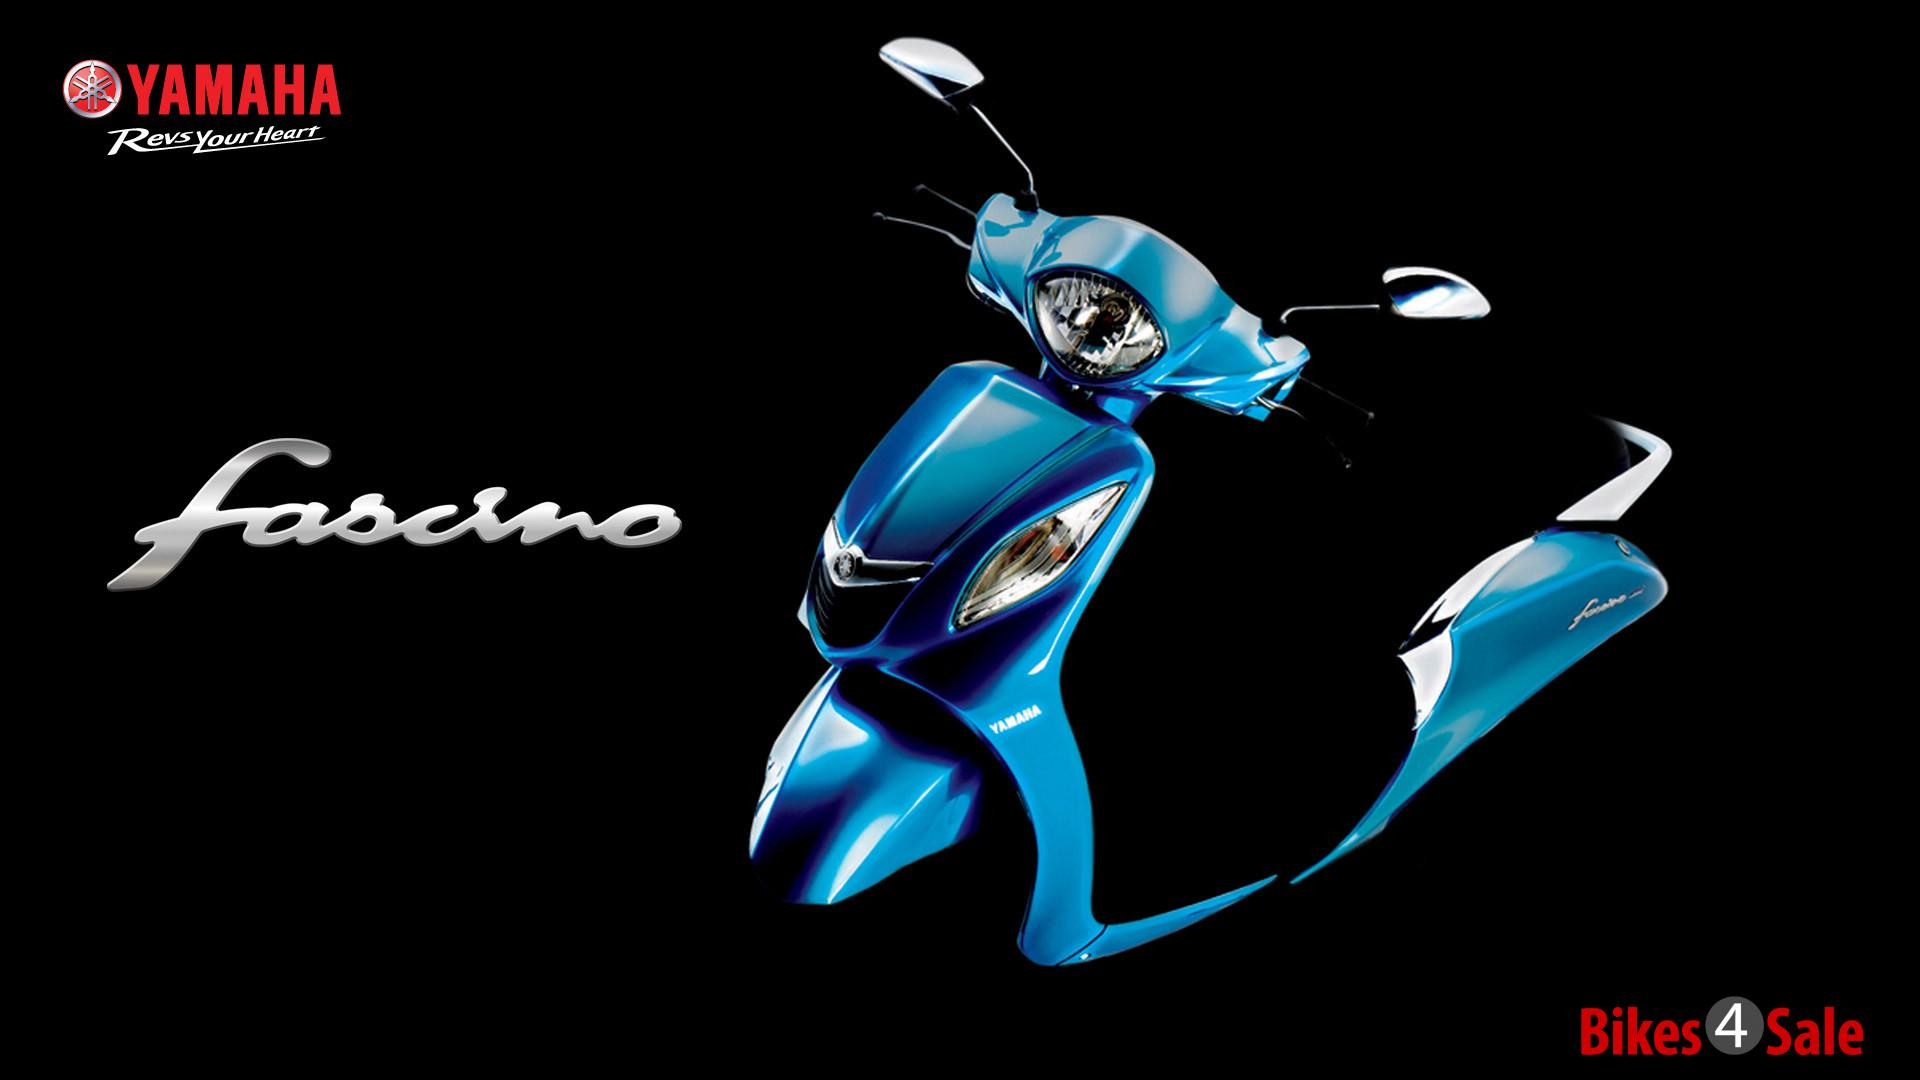 Yamaha Fascino body